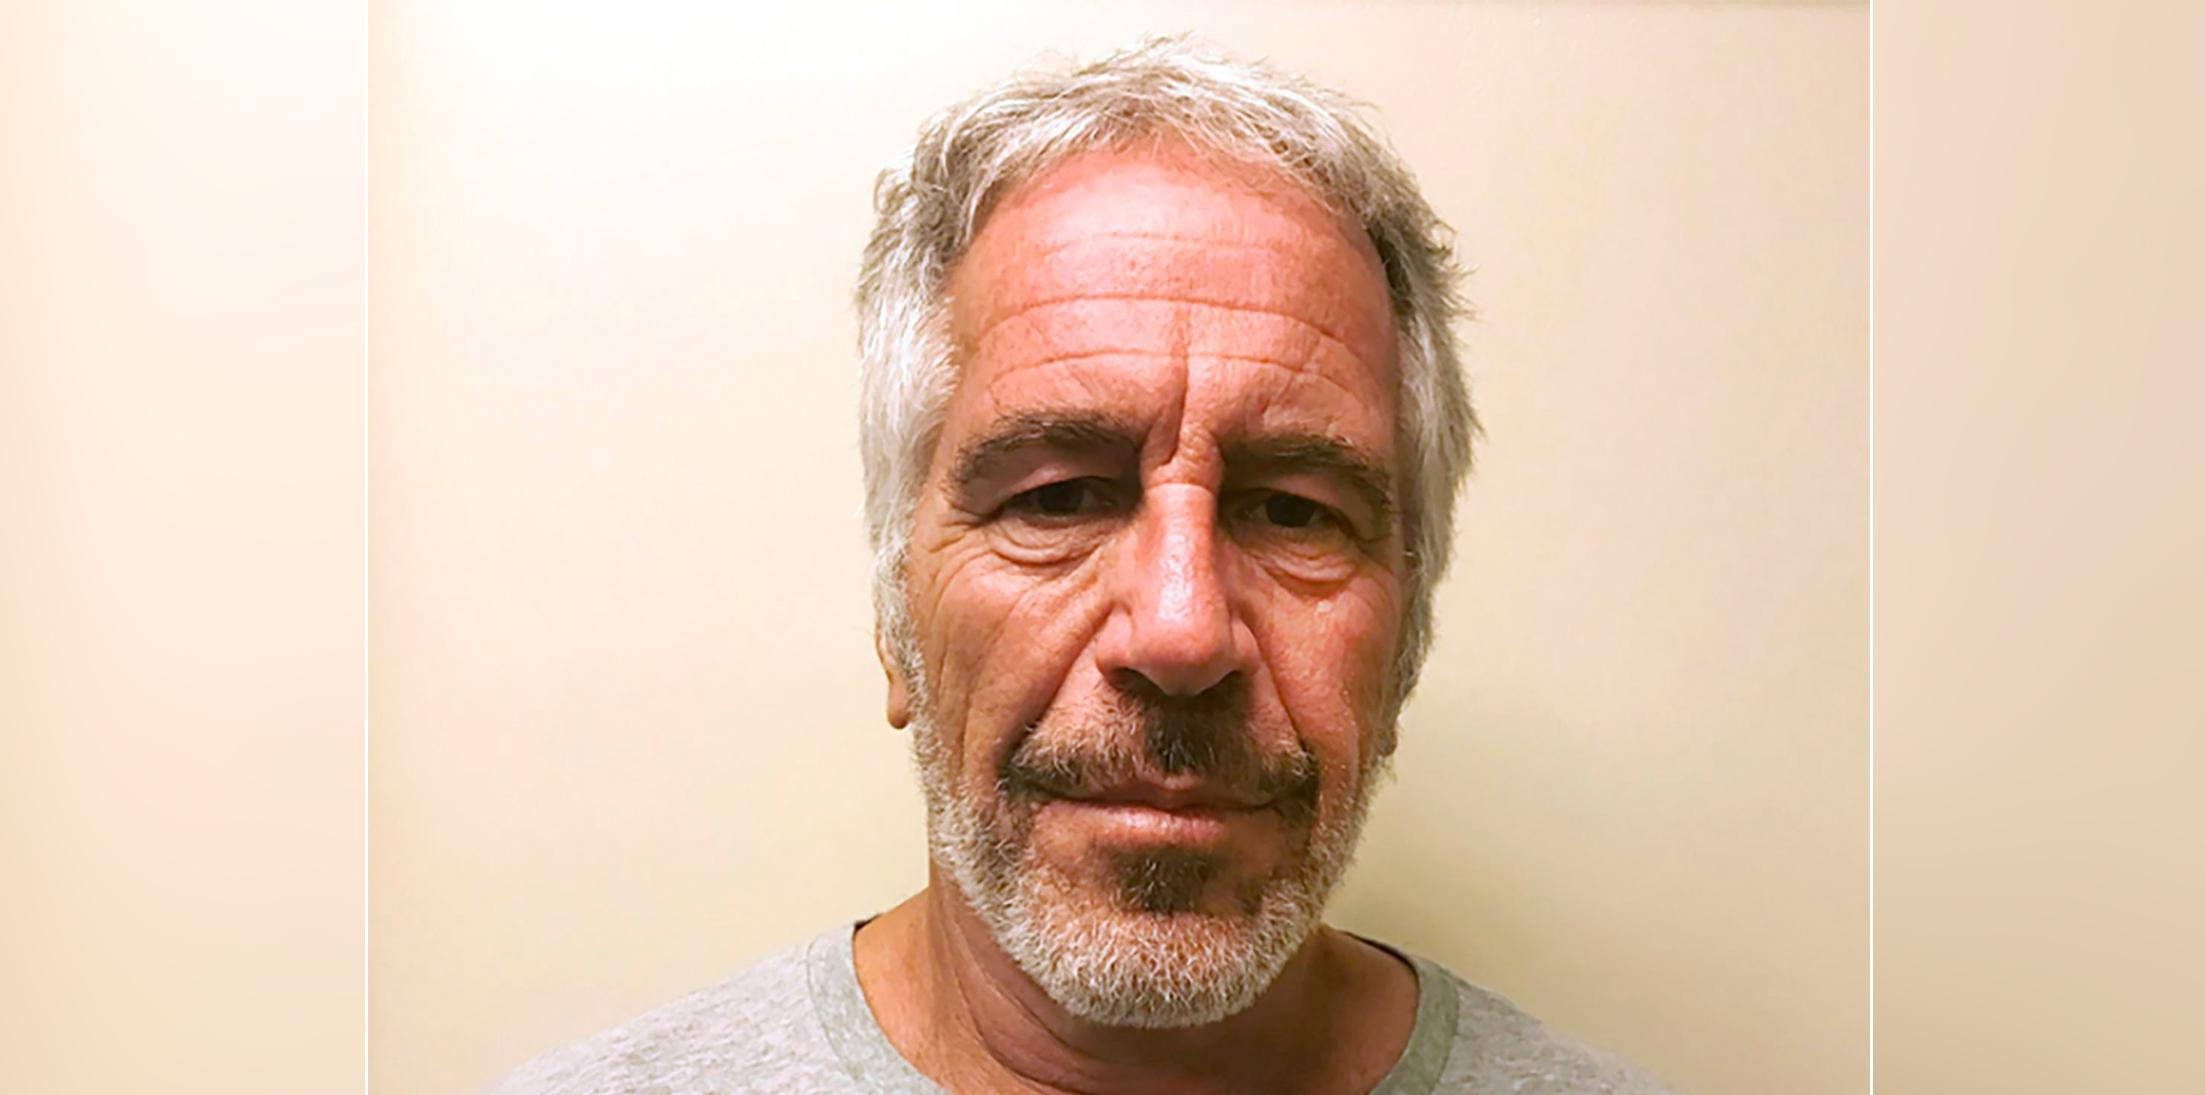 Jeffrey Epstein Plea Deal Investigation